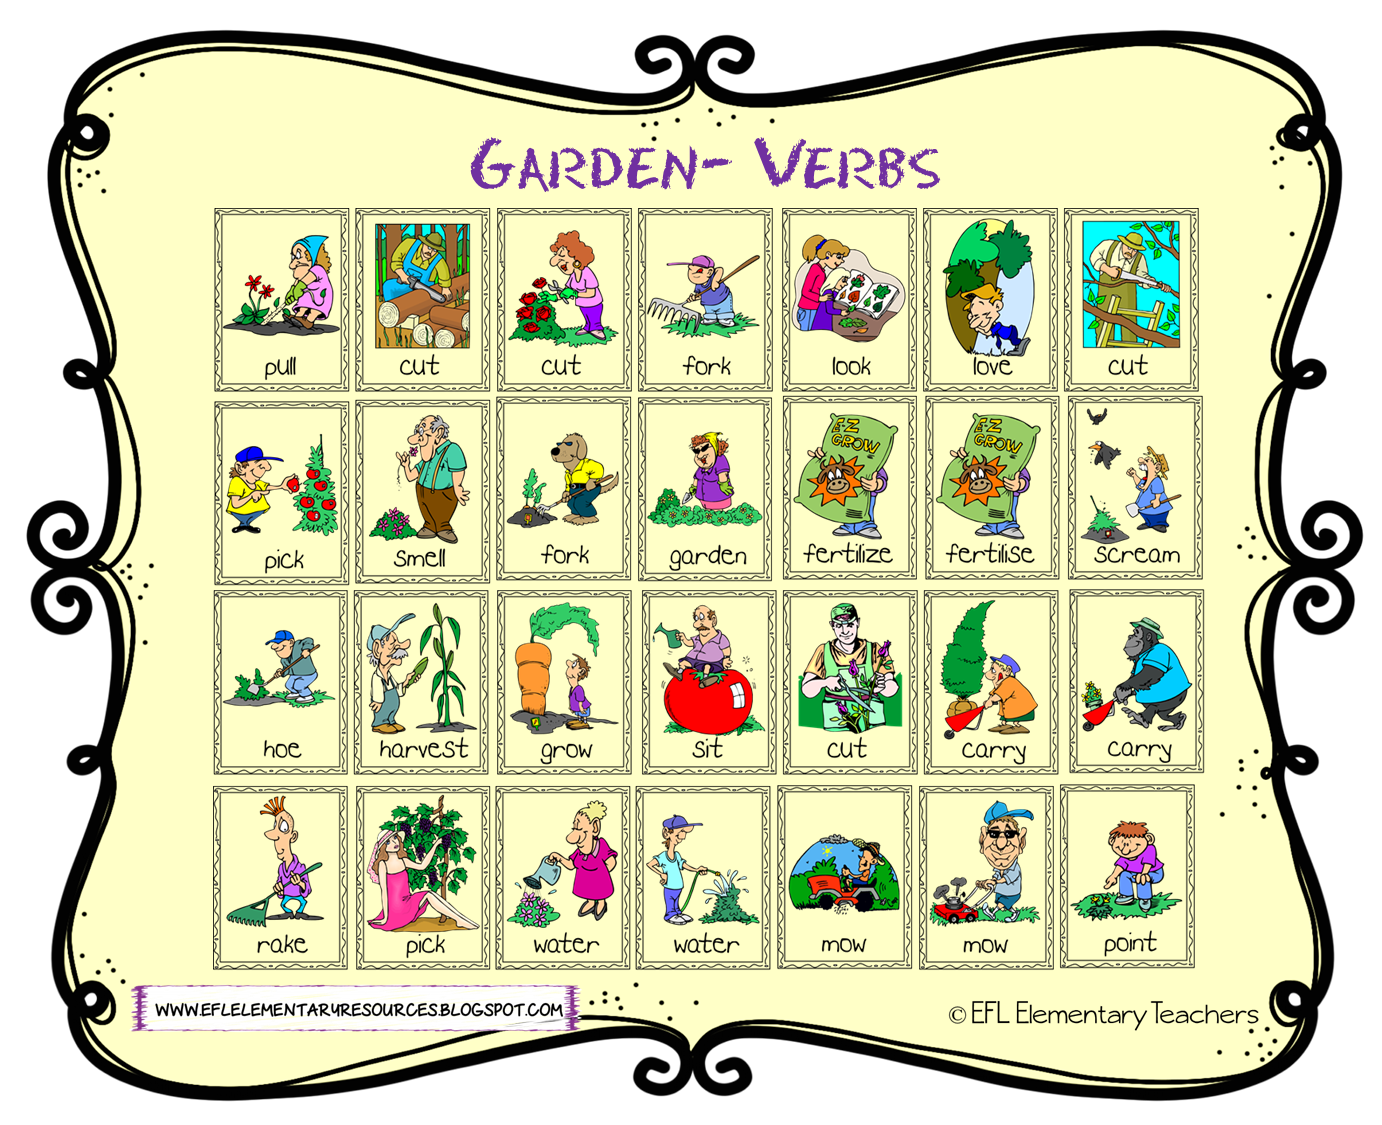 Efl Elementary Teachers Nature Or Garden Theme For